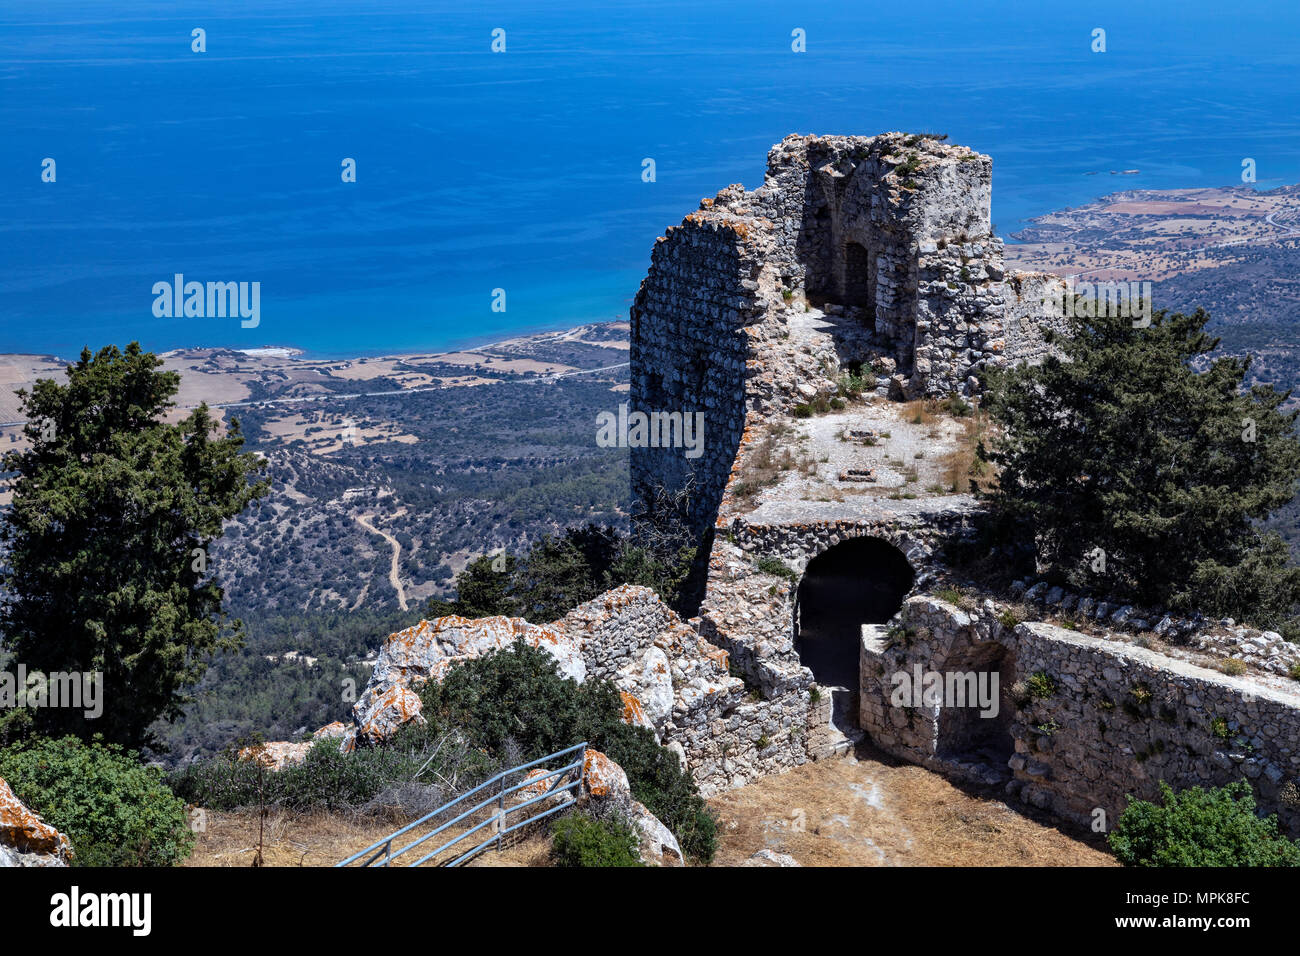 The ruins of Kantara Castle high in the mountains of Karpasia in the northeast of Cyprus in the TRNC (Turkish Republic of Northern Cyprus). - Stock Image